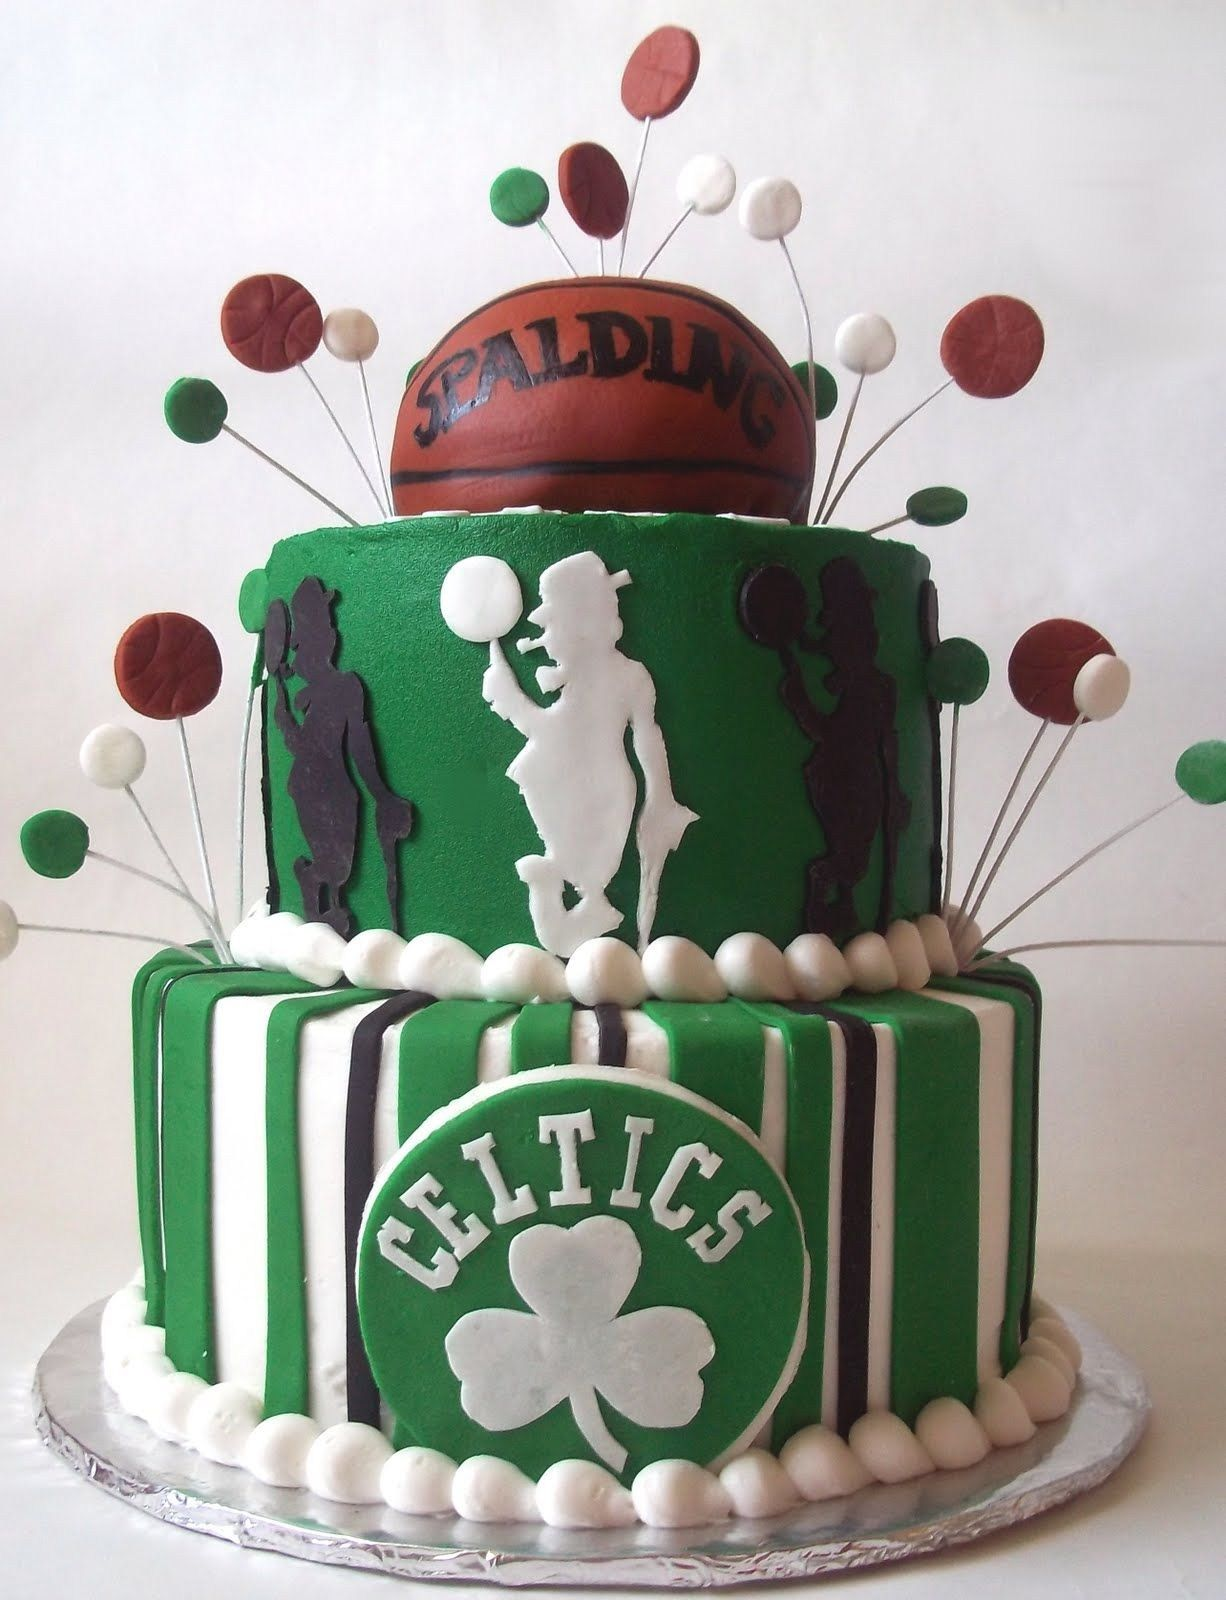 30 Pretty Image Of Birthday Cakes Boston Celtics Cake I Need This For My Sons Next B Day Fun